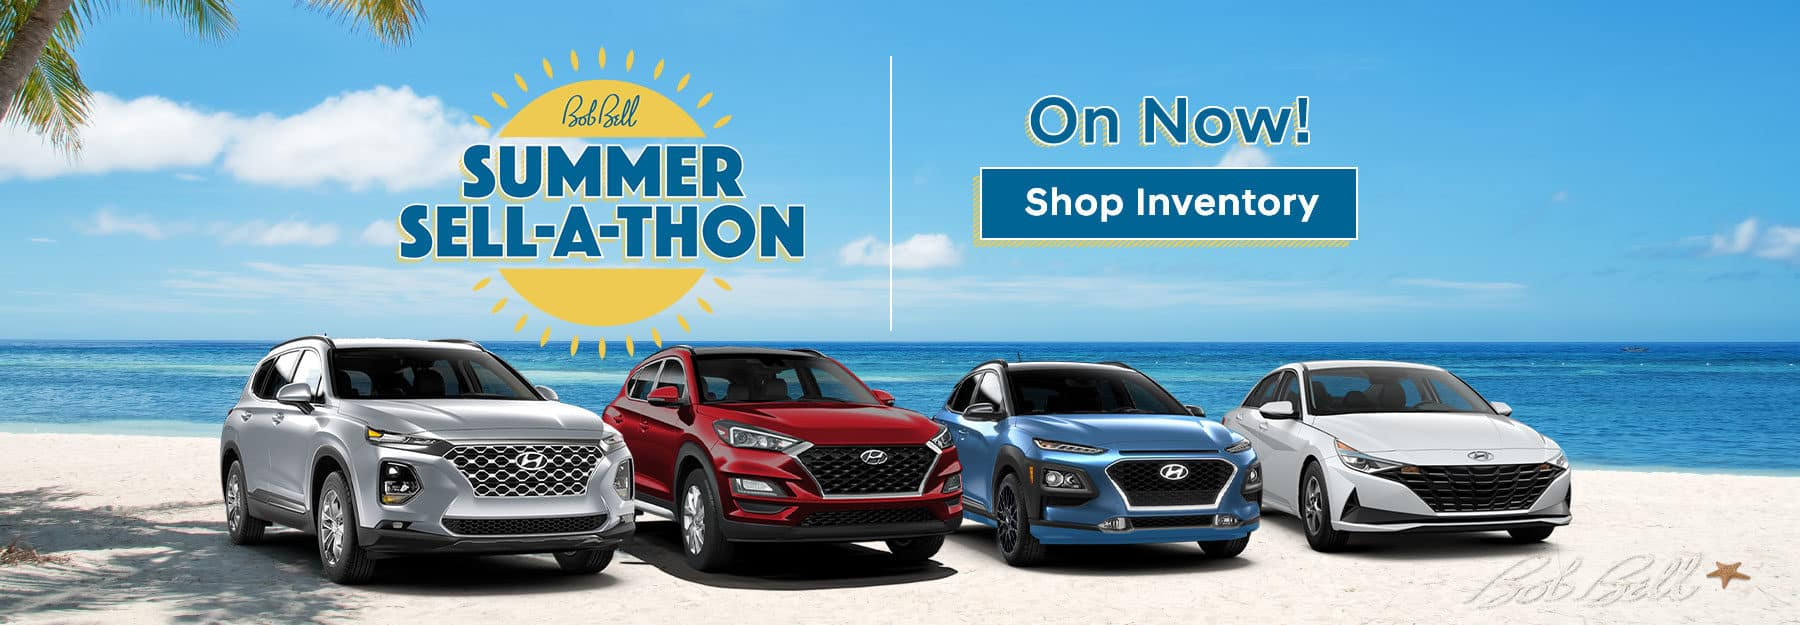 Summer Sell-a-thon